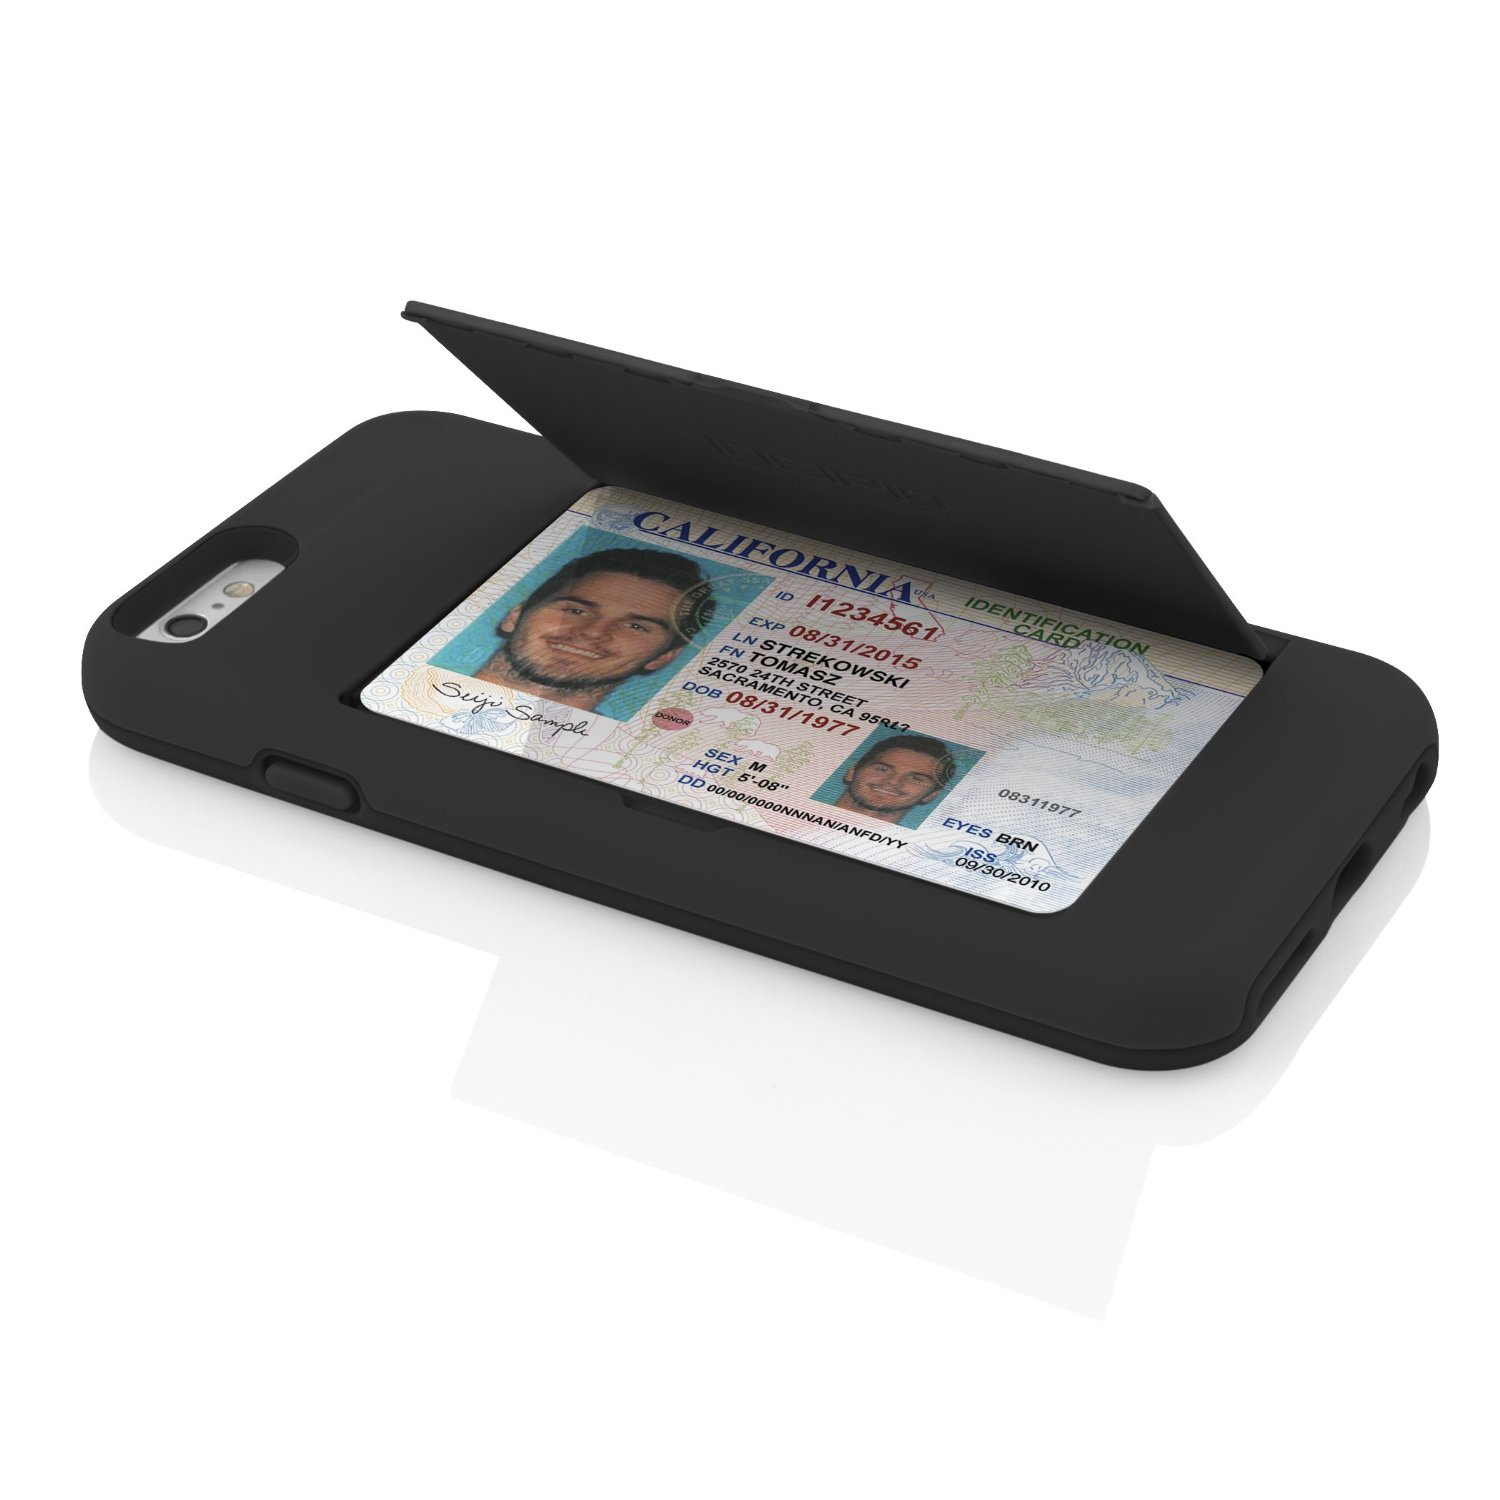 online store 6c473 d9051 Hide your credit cards inside the Stowaway iPhone 6 case